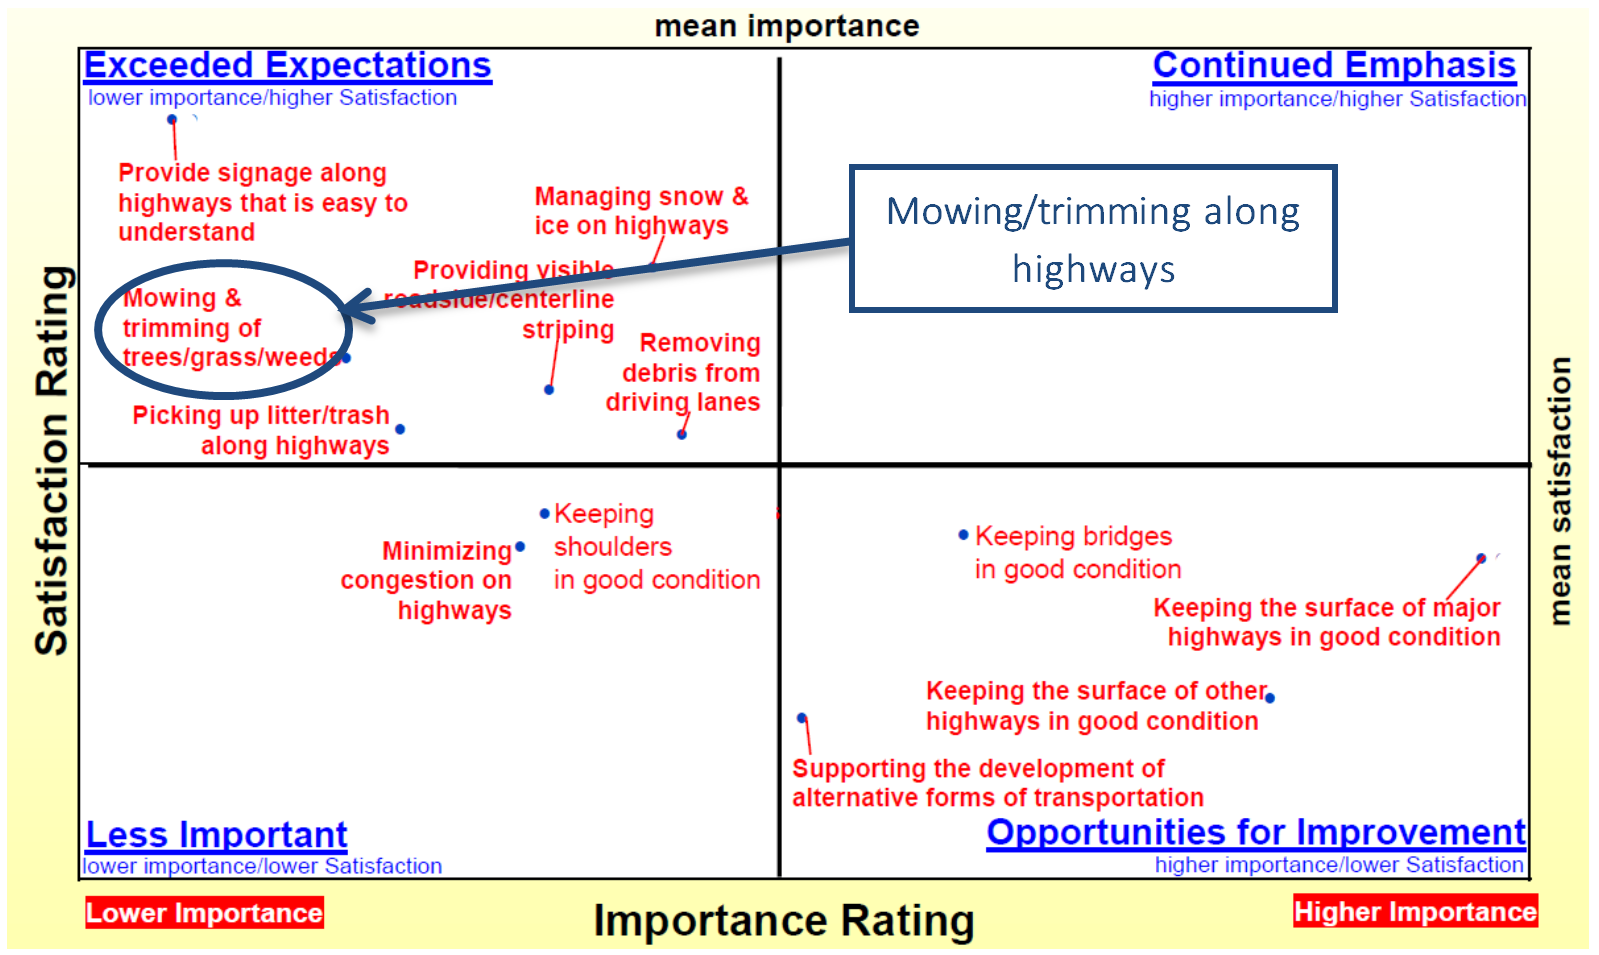 Four quadrant chart with satisfaction rating on y axis and importance rating on x axis. Higher satisfaction and importance in upper right corner. Mowing/trimming along highways relatively high satisfaction, but very low importance.